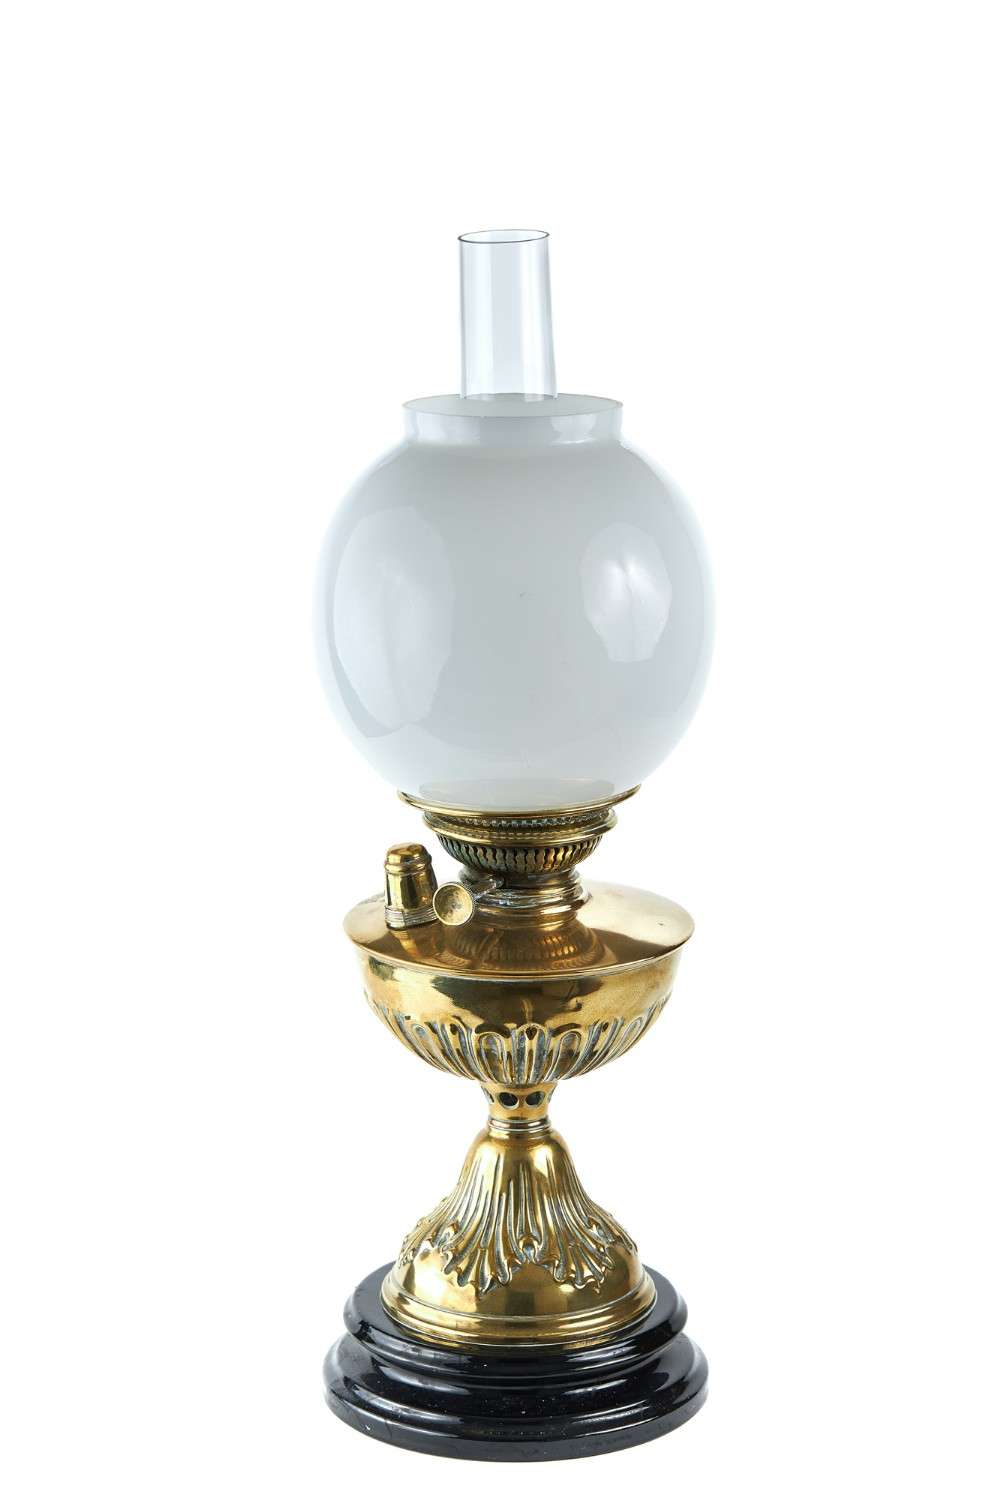 early 19th century embossed brass oil lamp